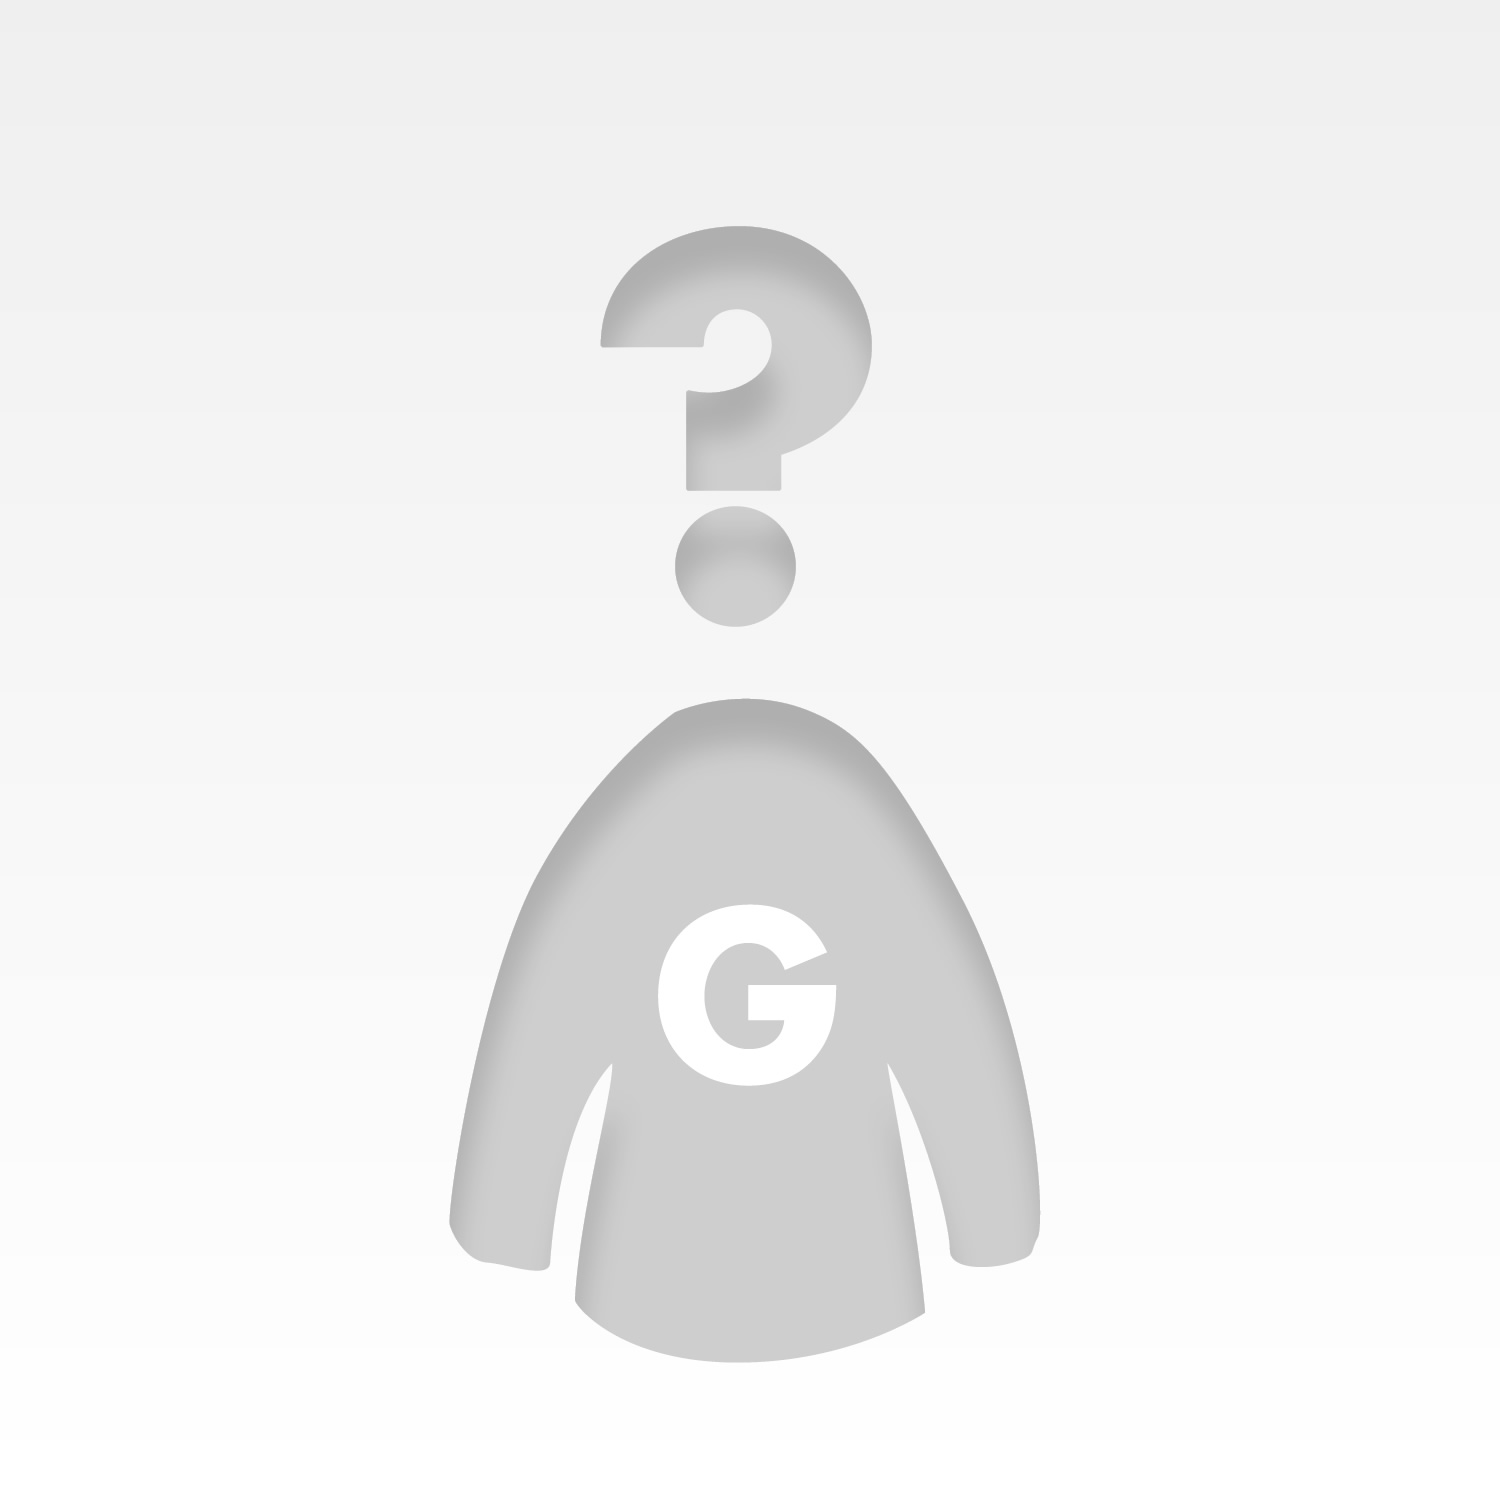 guadalupely\'s avatar